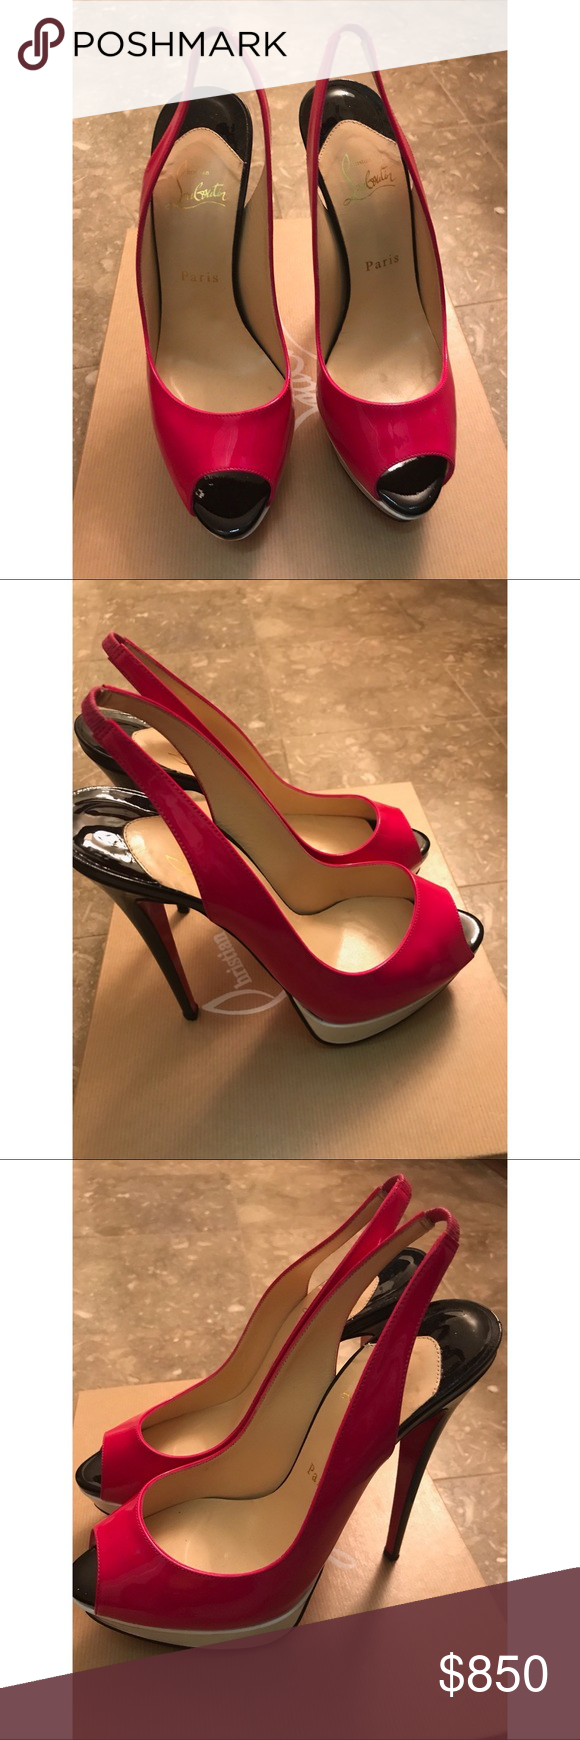 349128dd744f Christian Louboutin Lady Peep 150 Slingback Authentic preowned Multicolor  (hot pink